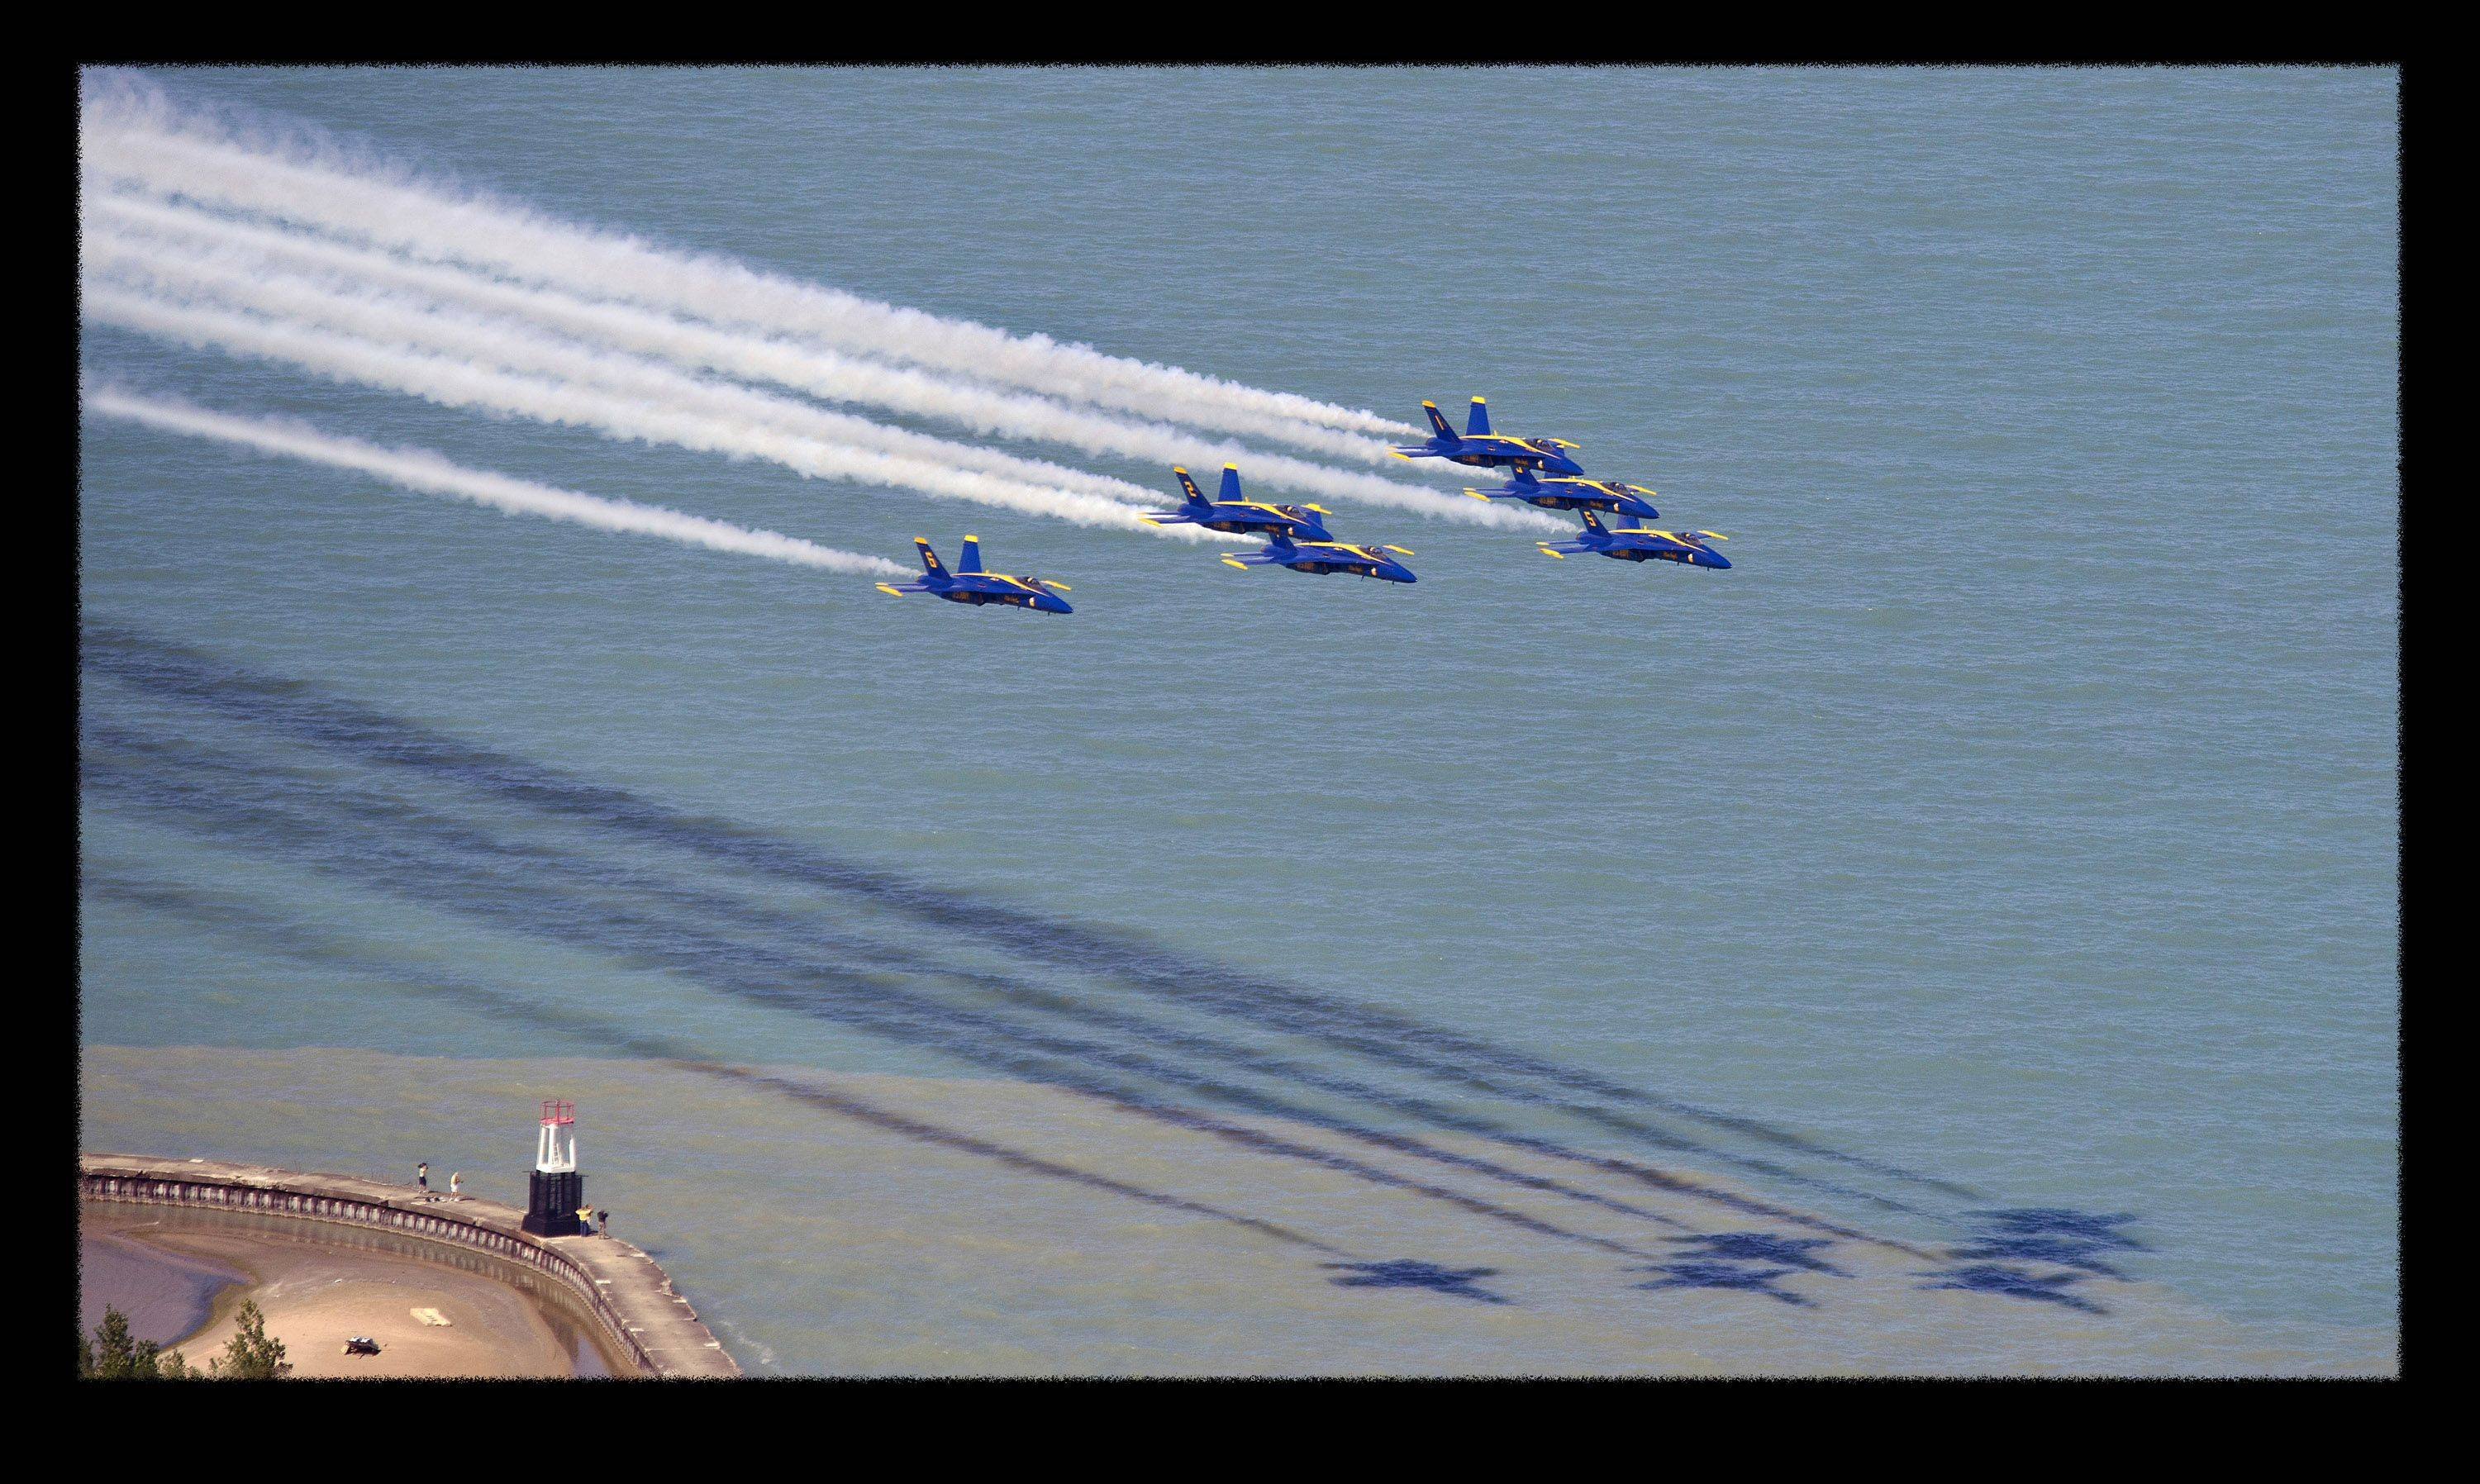 Bob Pudell of Medinah, pastor of Trinity Lutheran Church in Roselle, won our Photo Finish contest for August with his inspiring image of the Blue Angels, taken at the Chicago Air Show from the John Hancock Observatory.